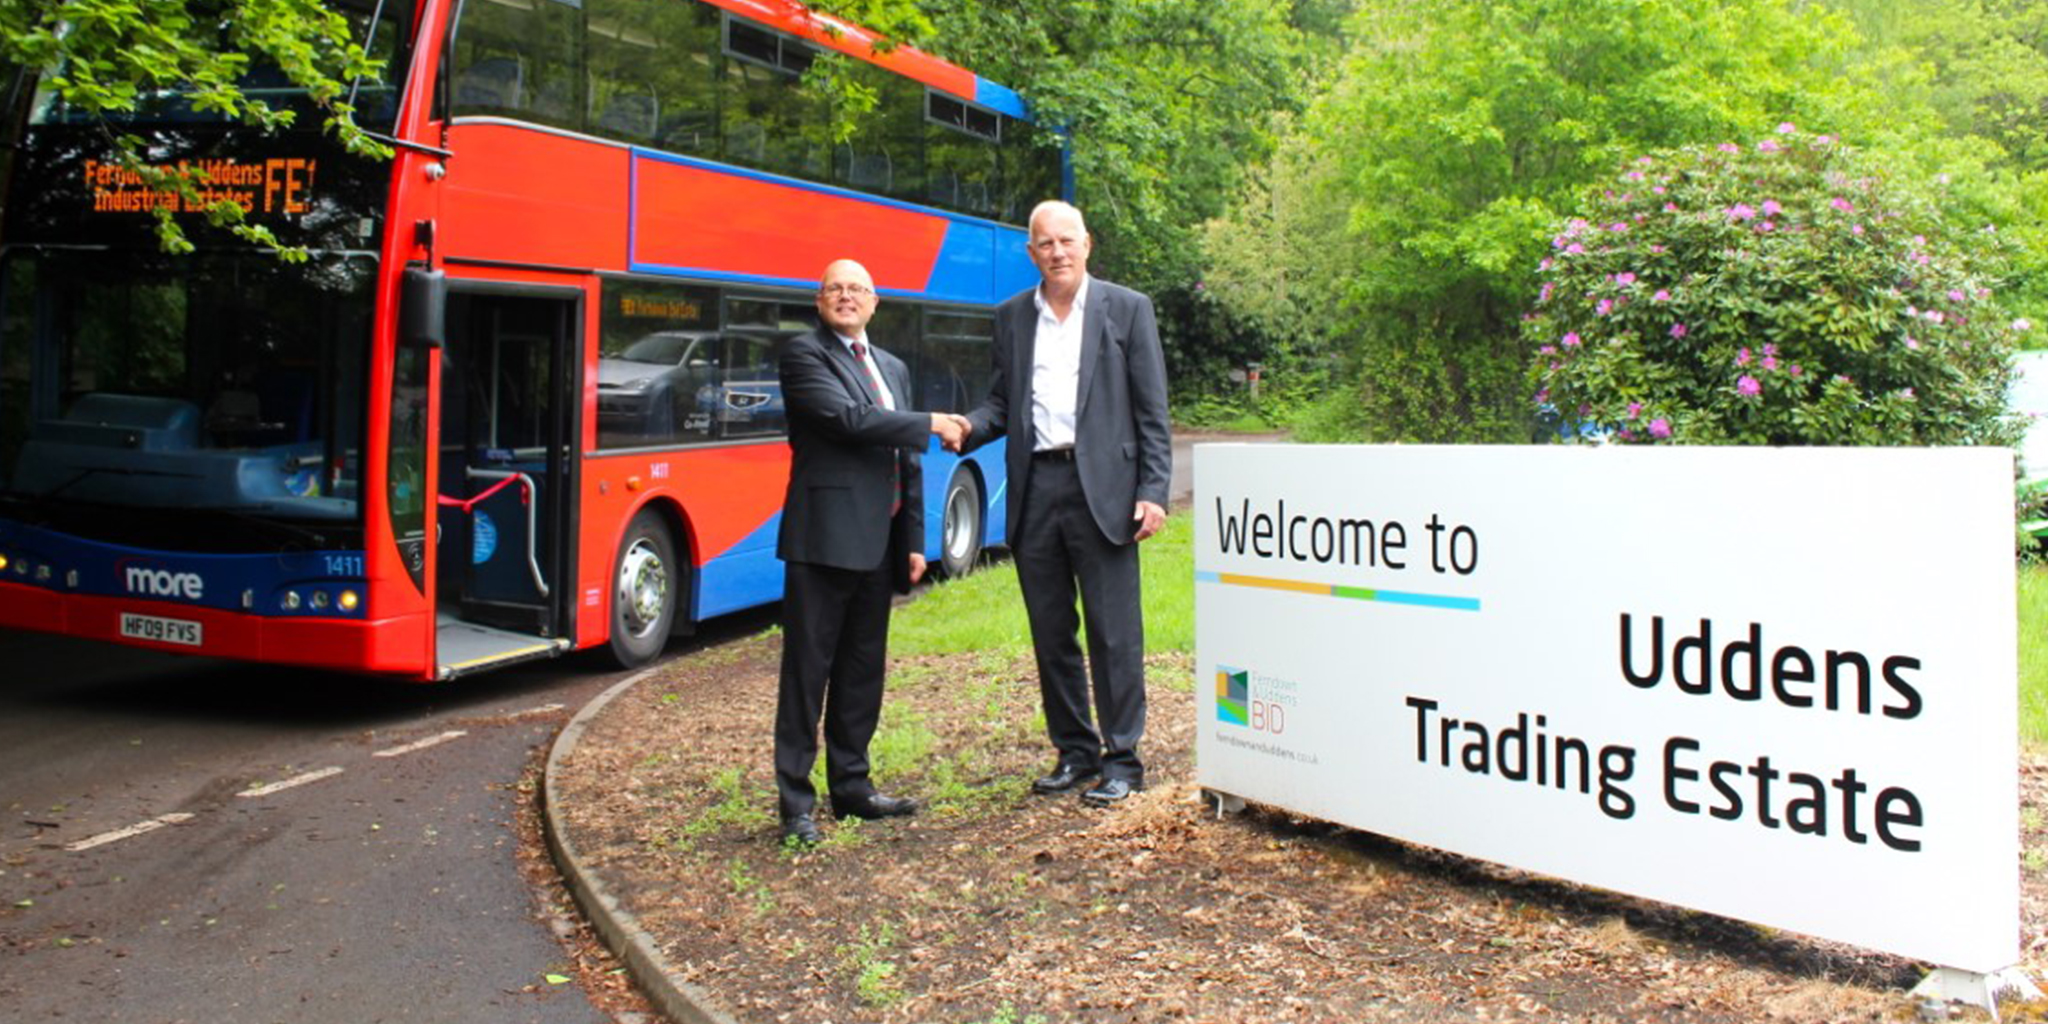 Picture of Andrew Wickham and Danny Godfrey in front of the FE1 Bus